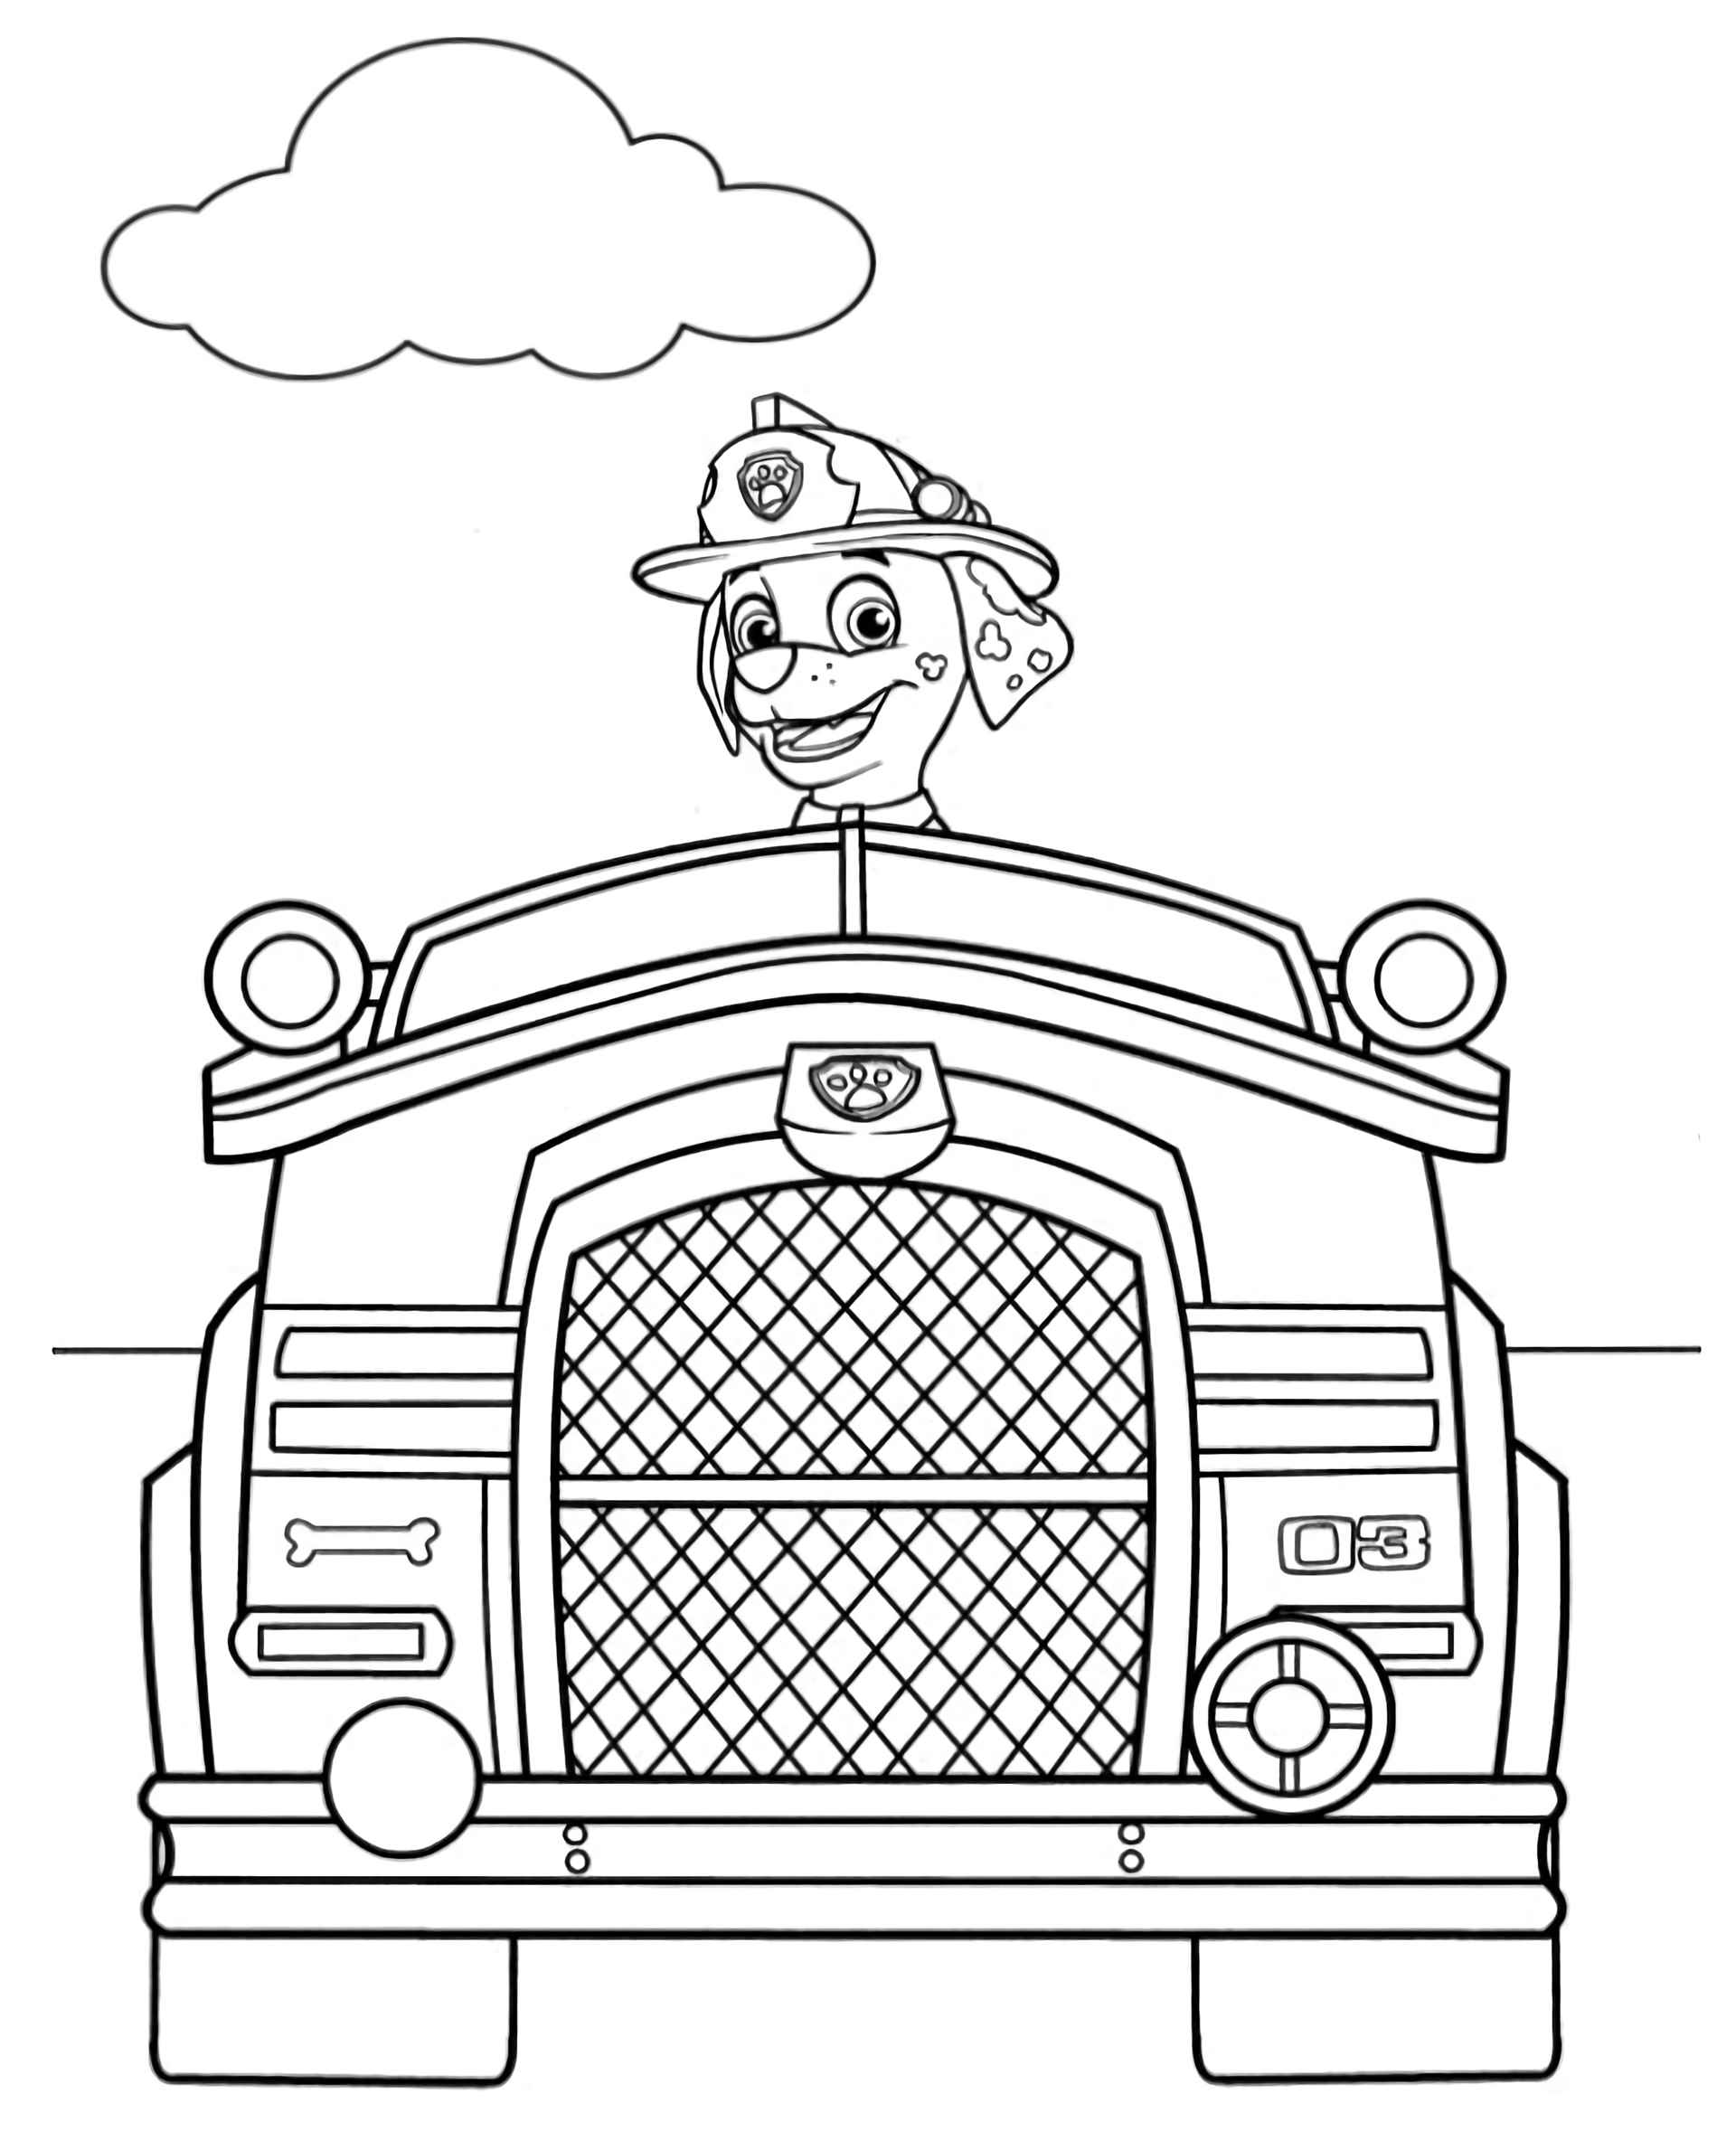 Marshal From Paw Patrol Firetruck Coloring Sheets